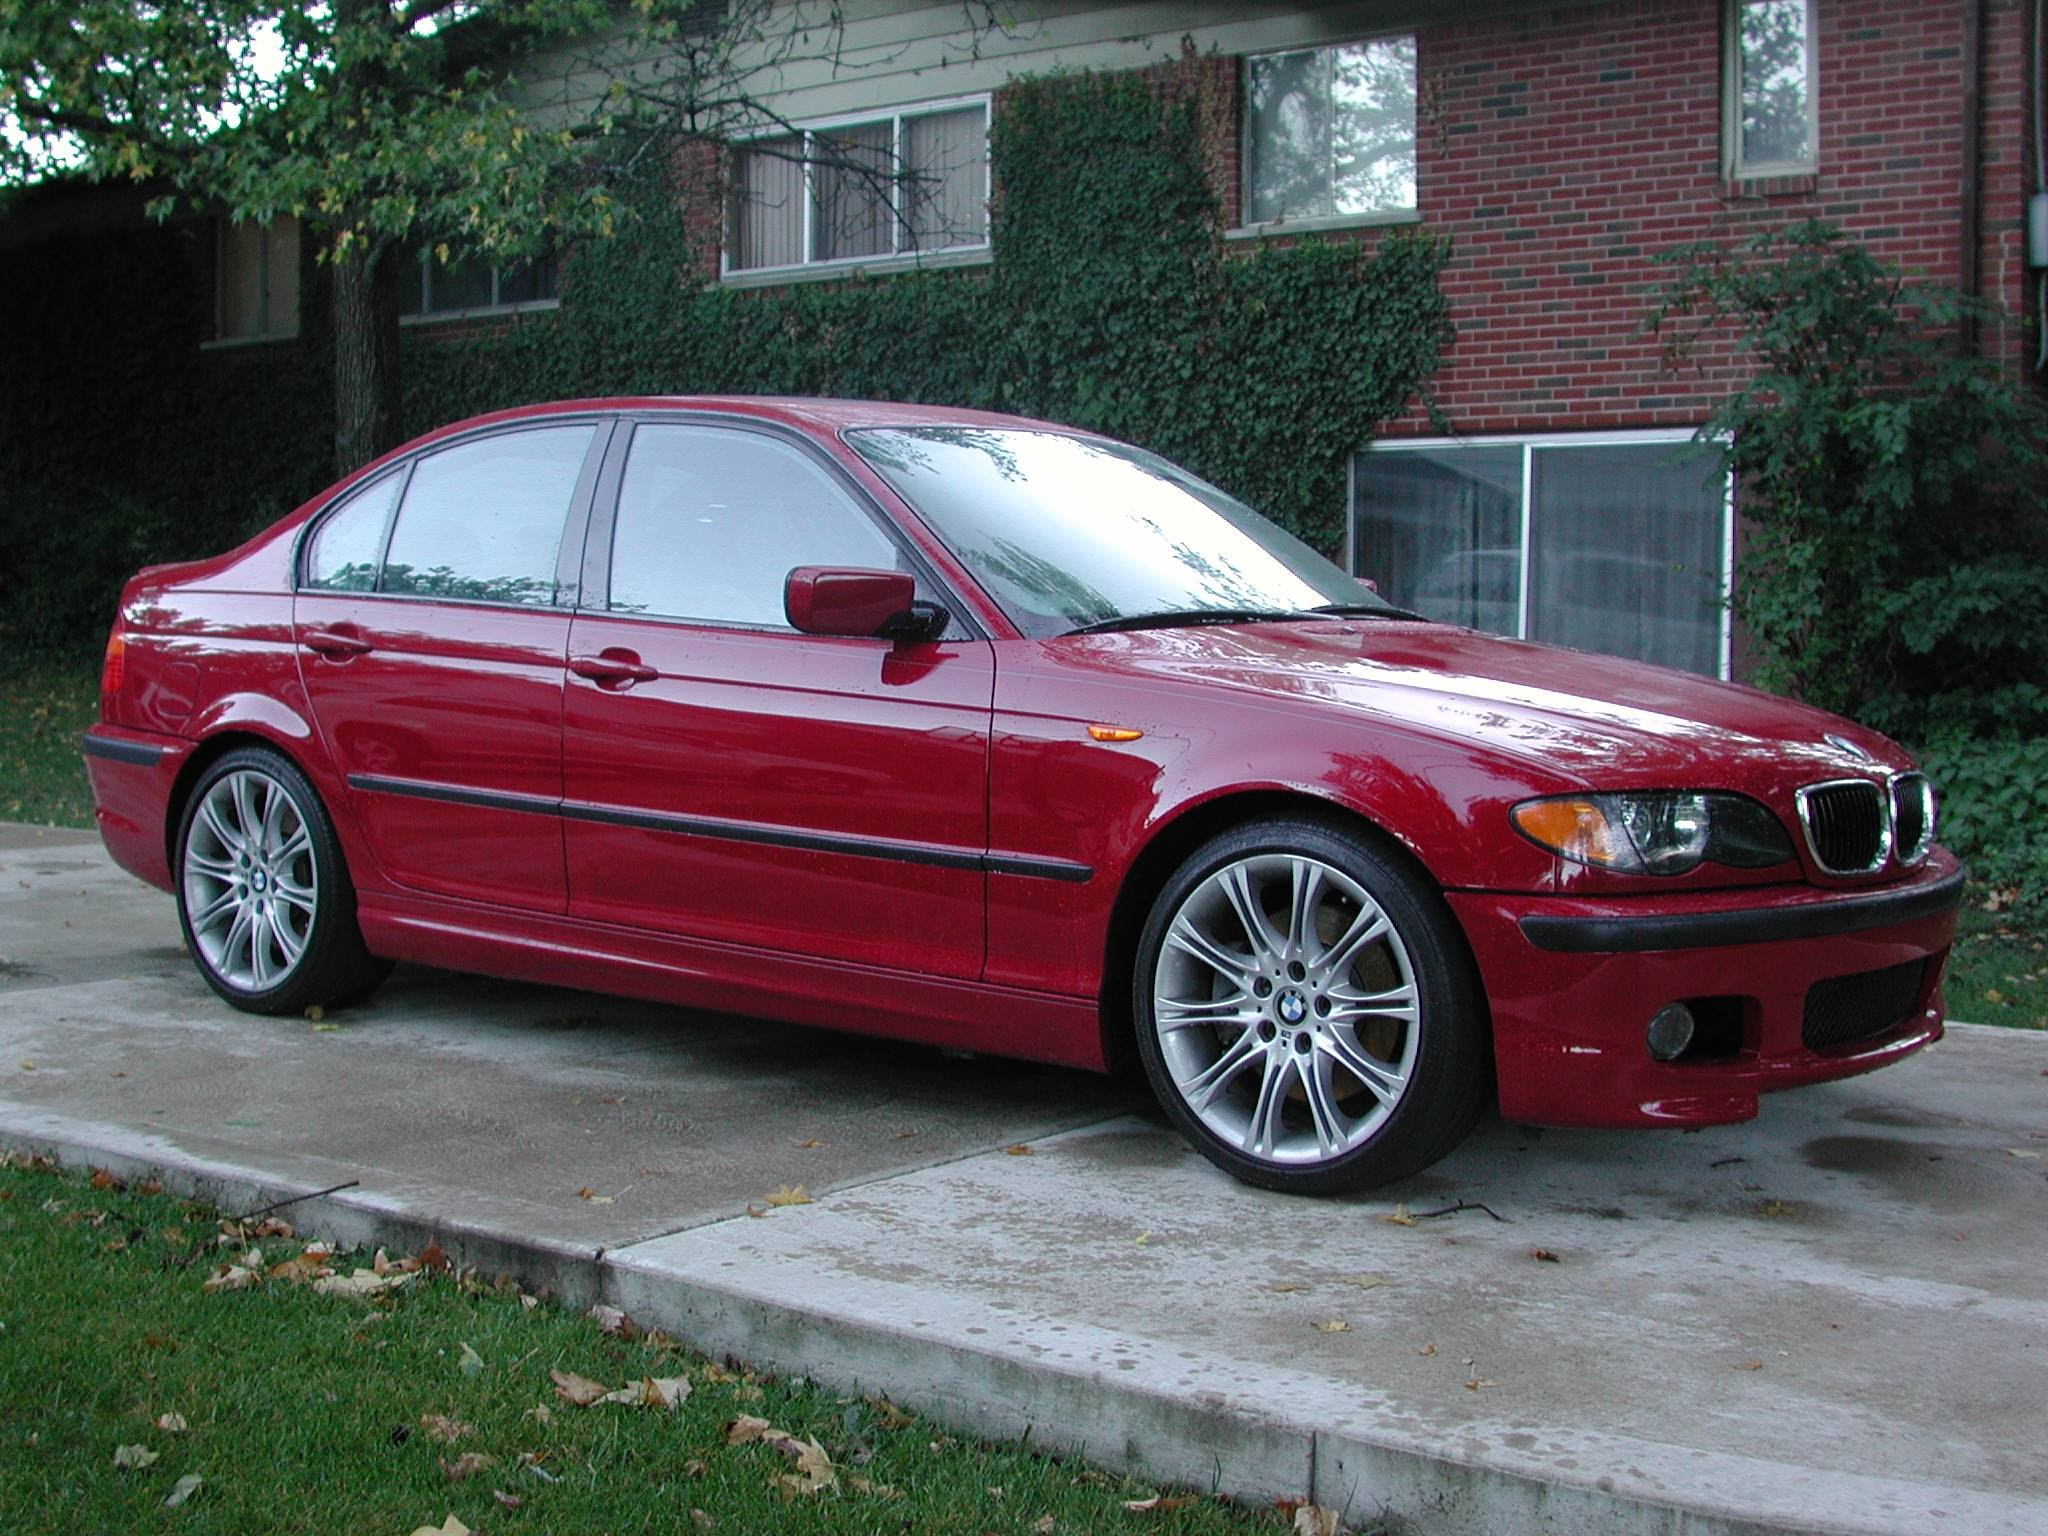 2004 Bmw 330i Sport Package - Auto Express